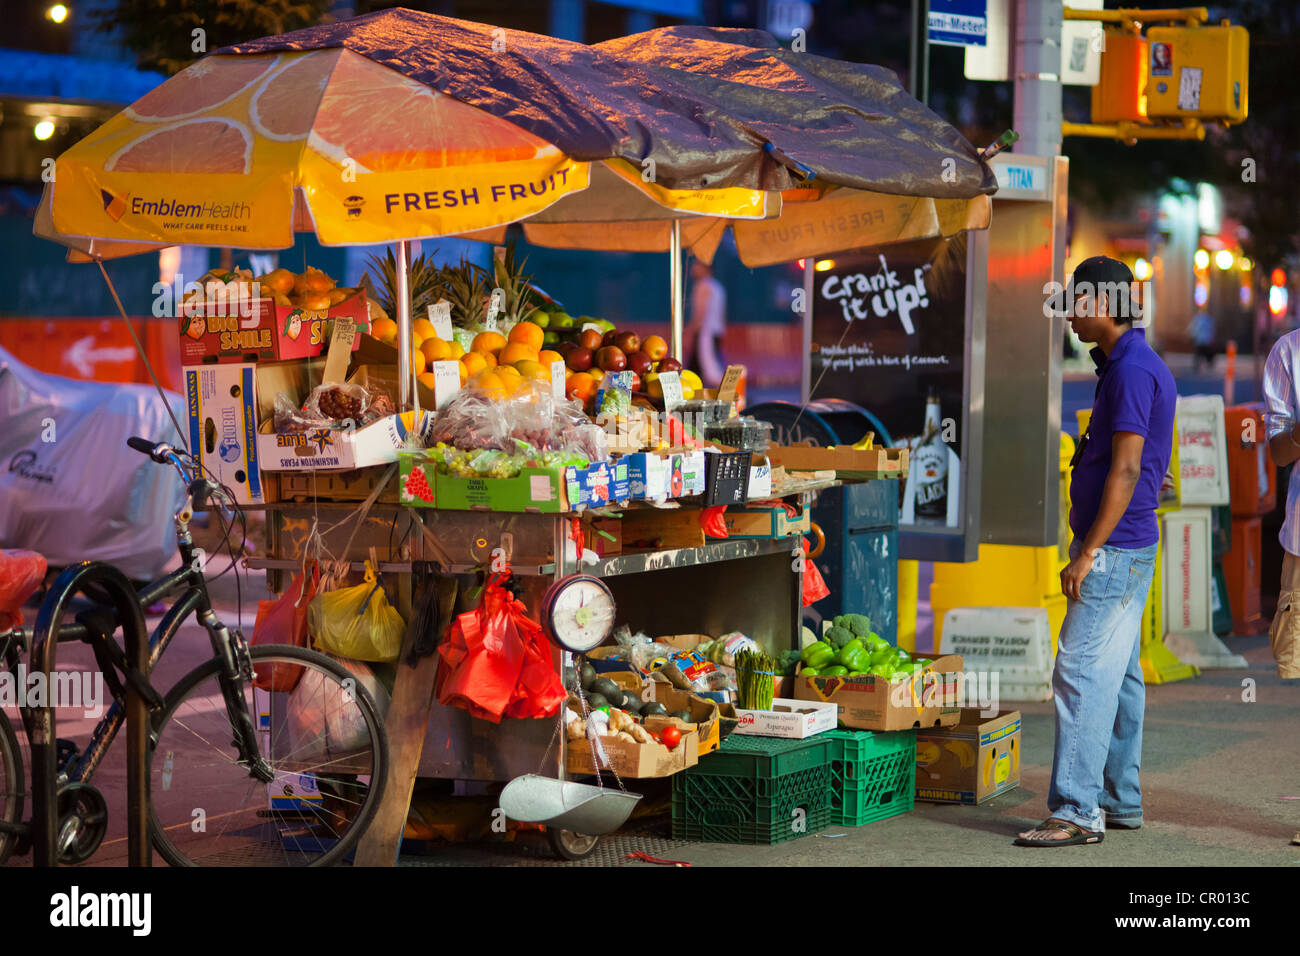 A 24 hour fruit and vegetable stand in the Chelsea neighborhood of New York Stock Photo